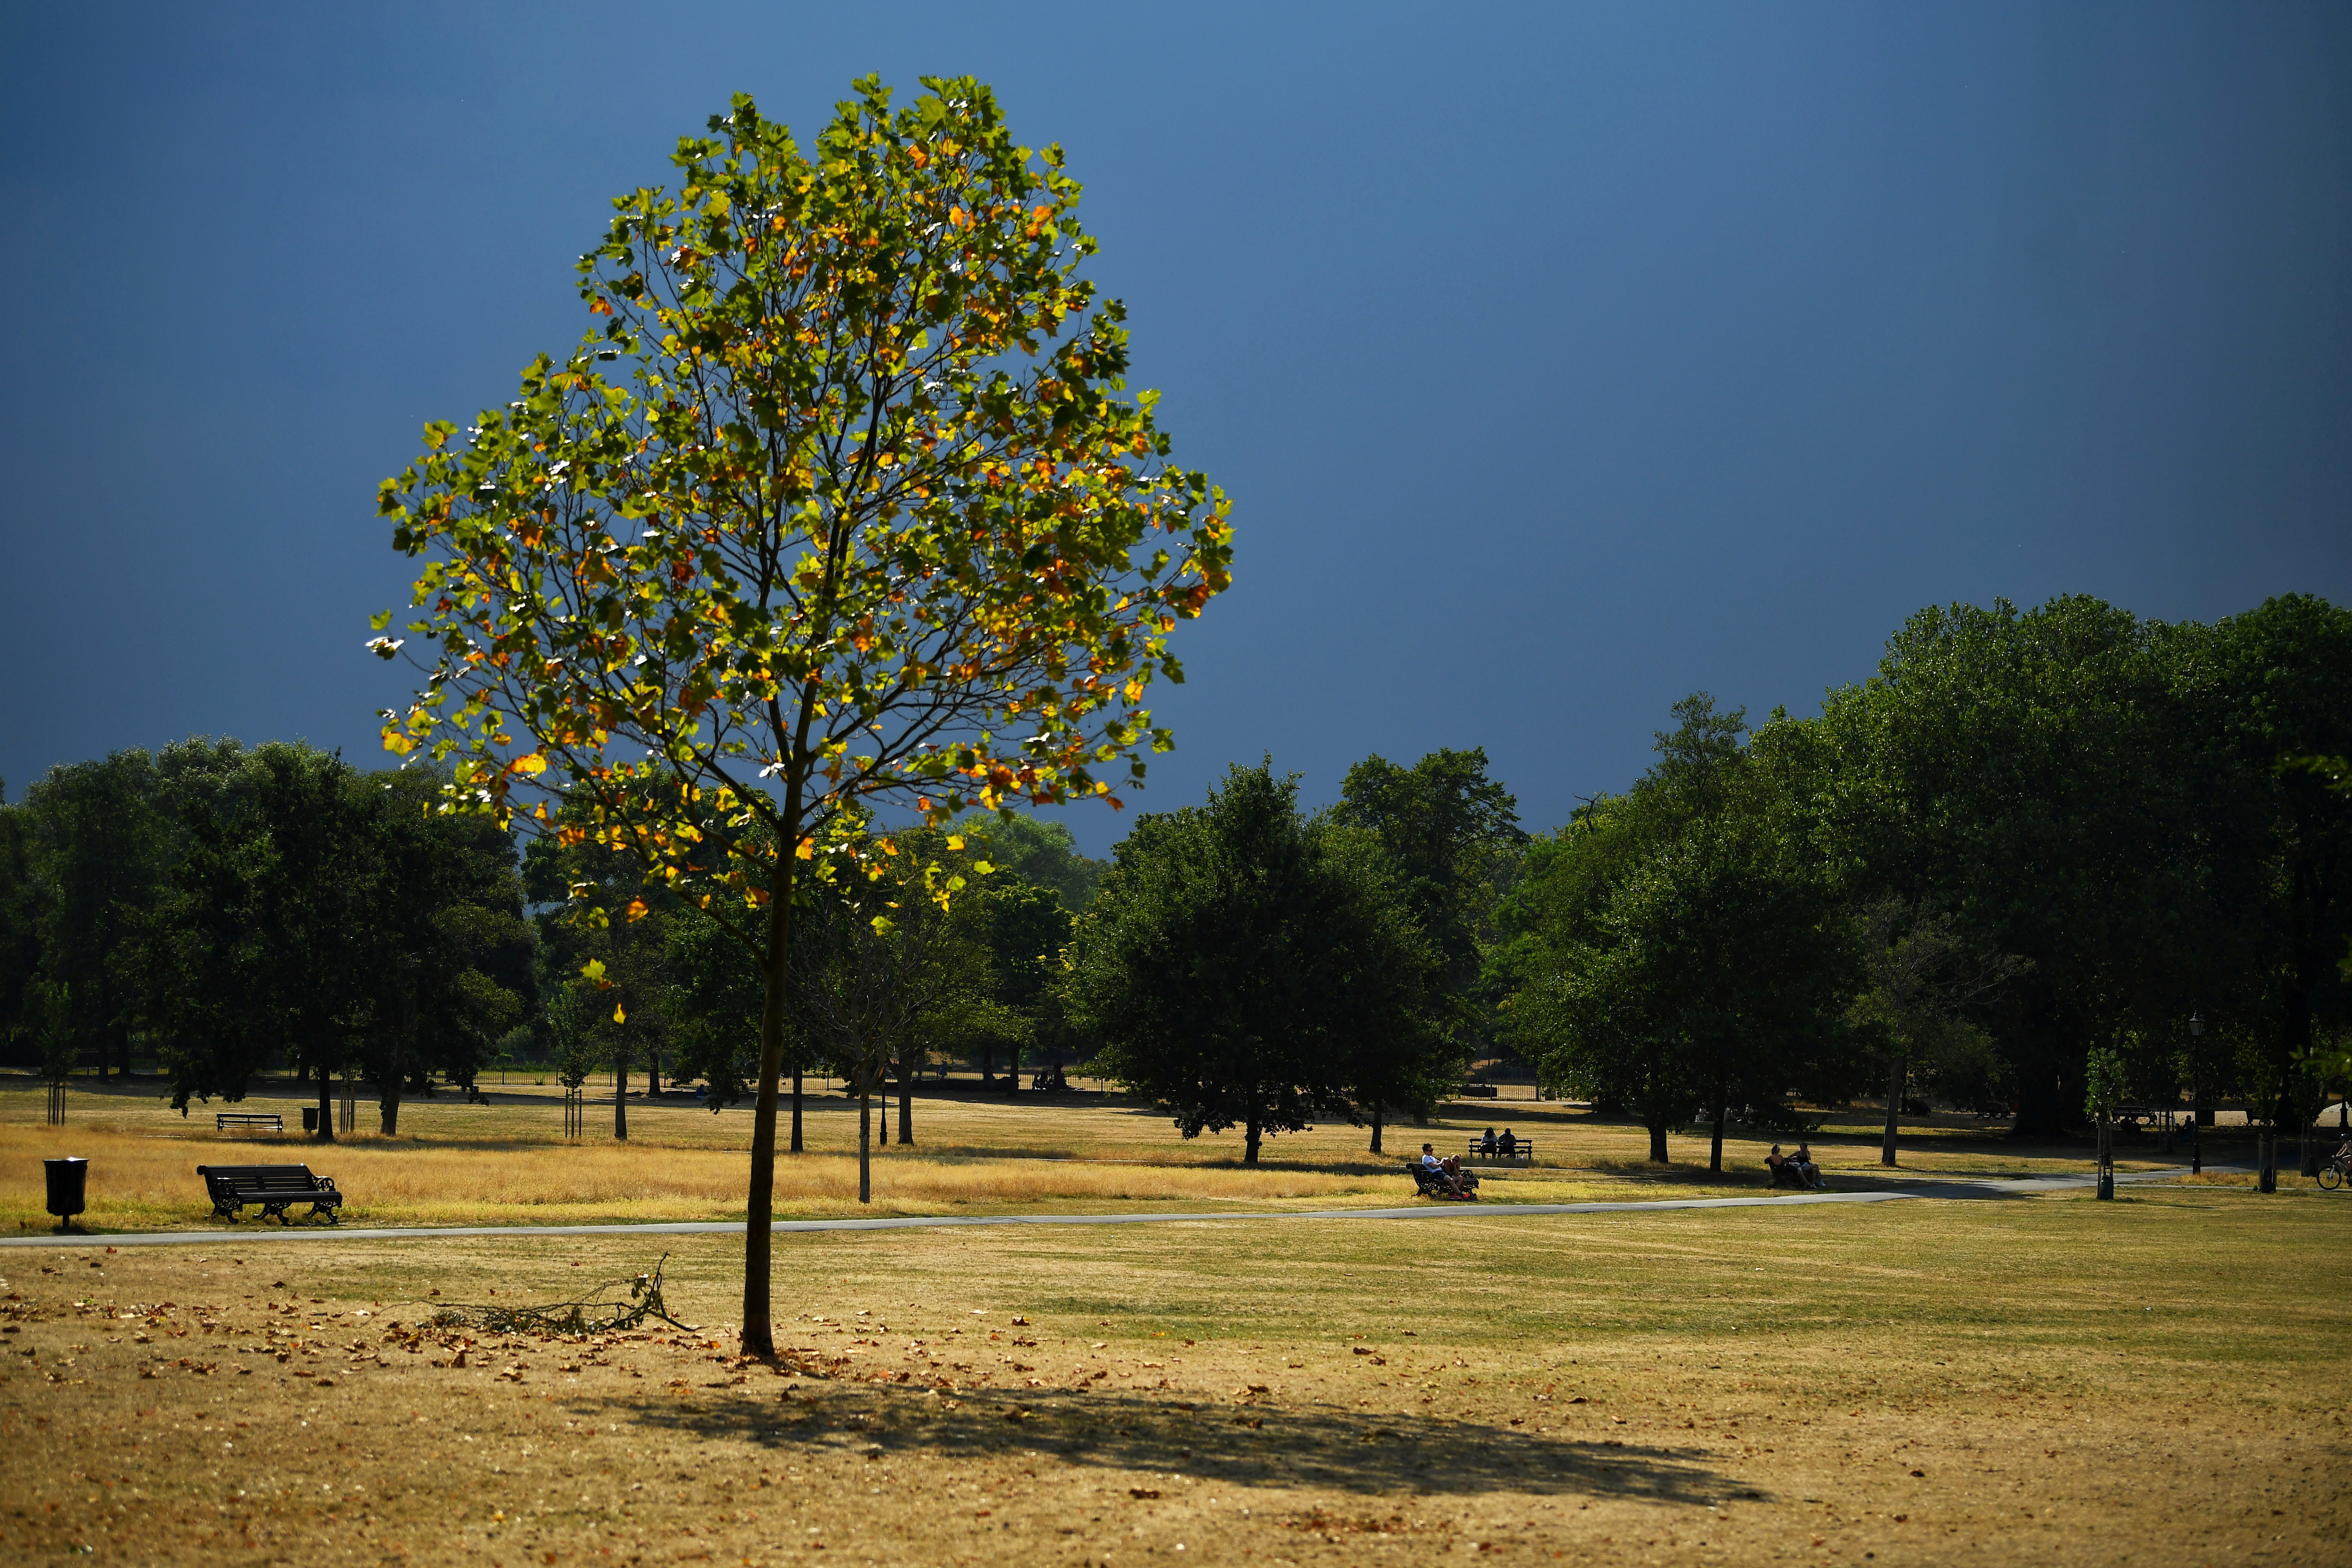 A tree is seen in a sun-dried and parched Clapham Common, during hot weather, amid the coronavirus (COVID-19) outbreak, in London, Britain August 12, 2020. REUTERS/Dylan Martinez/File Photo